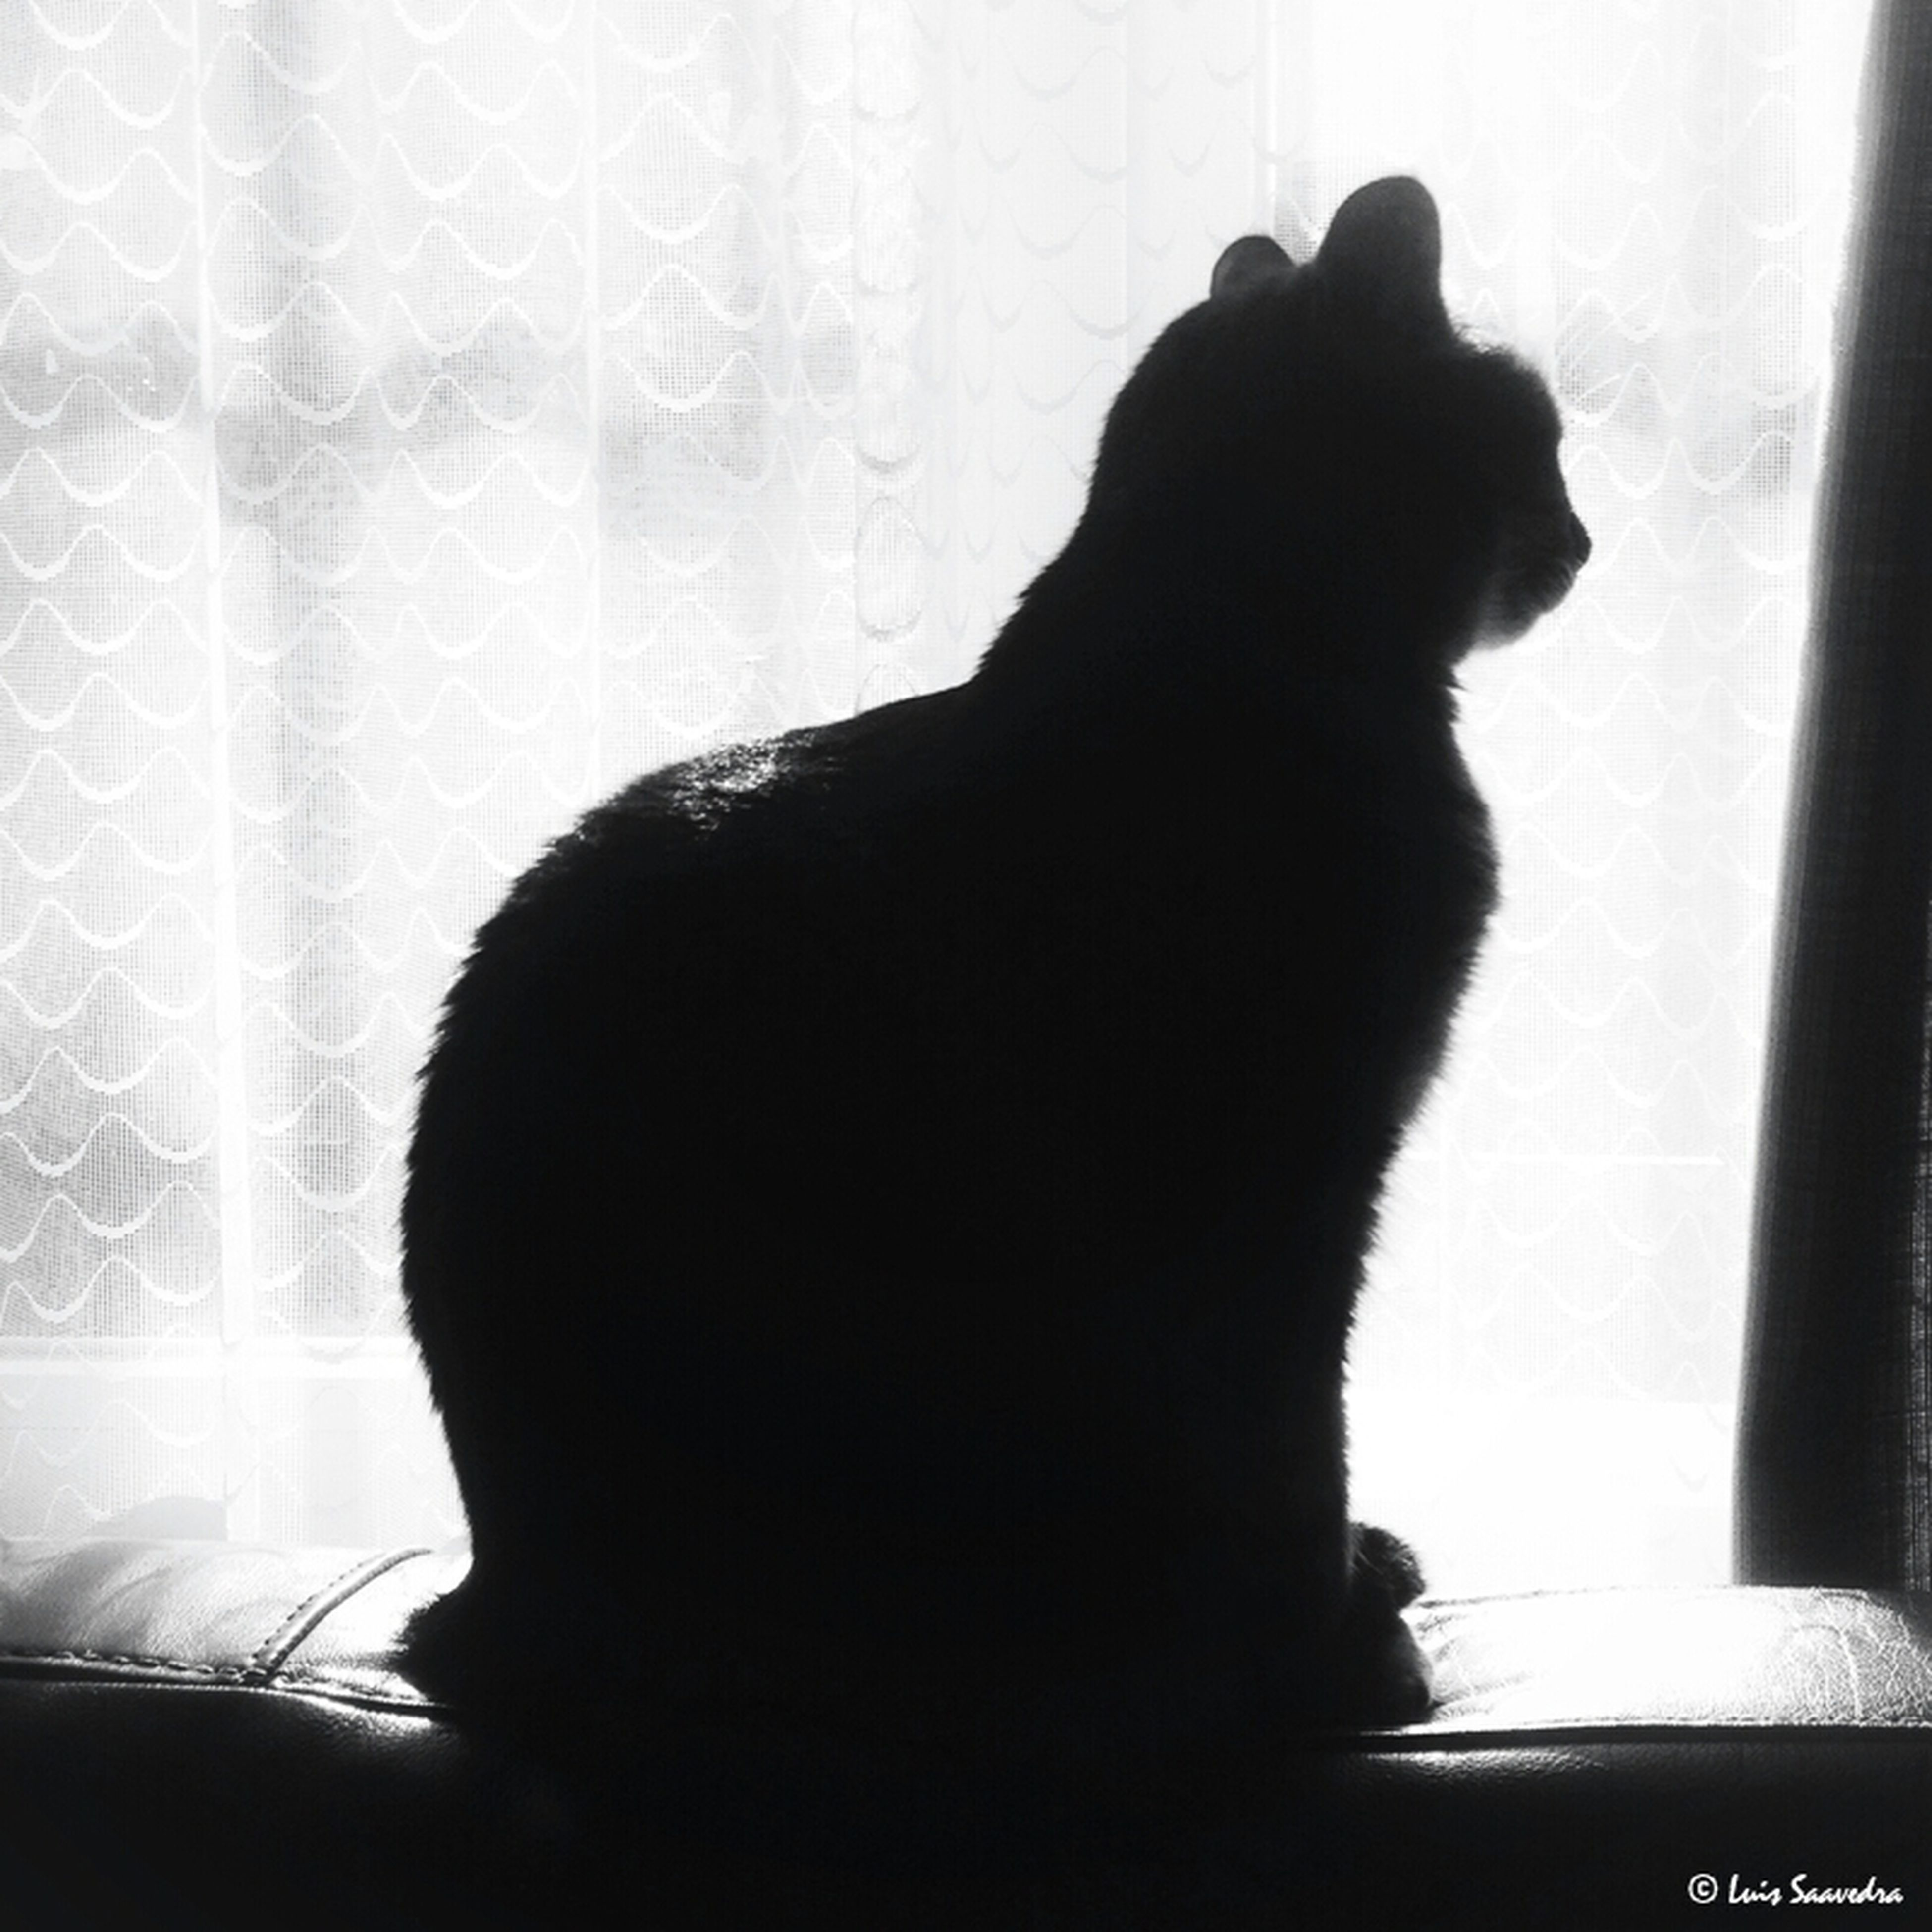 indoors, pets, domestic animals, domestic cat, cat, animal themes, one animal, mammal, window, feline, sitting, home interior, silhouette, relaxation, looking through window, glass - material, window sill, transparent, rear view, side view